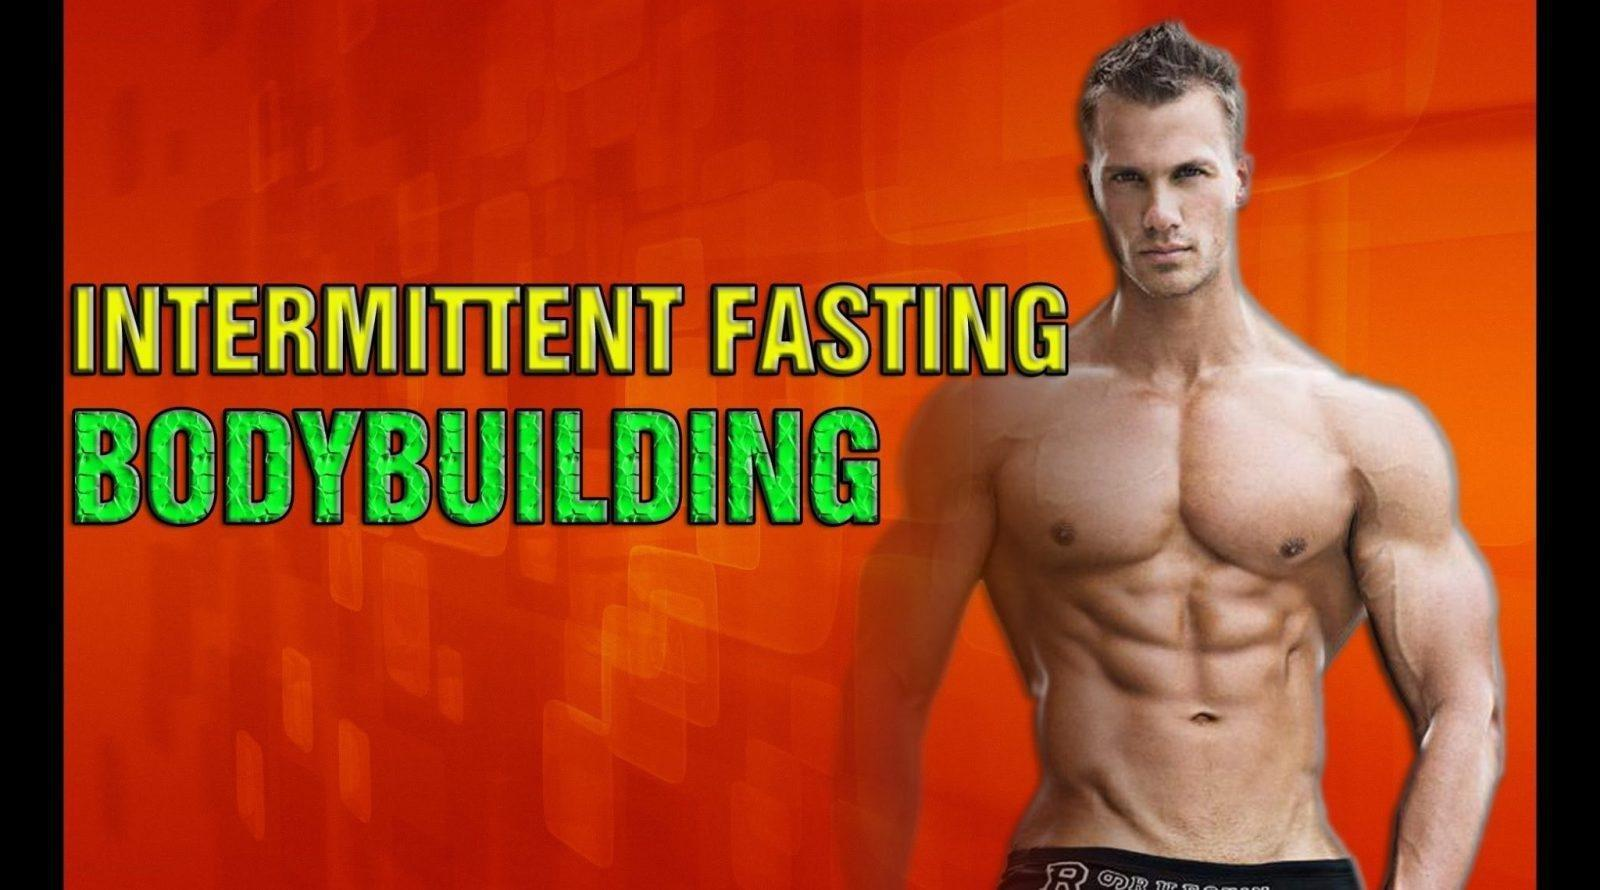 Intermittent Fasting And Bodybuilding: How To Reconcile Them